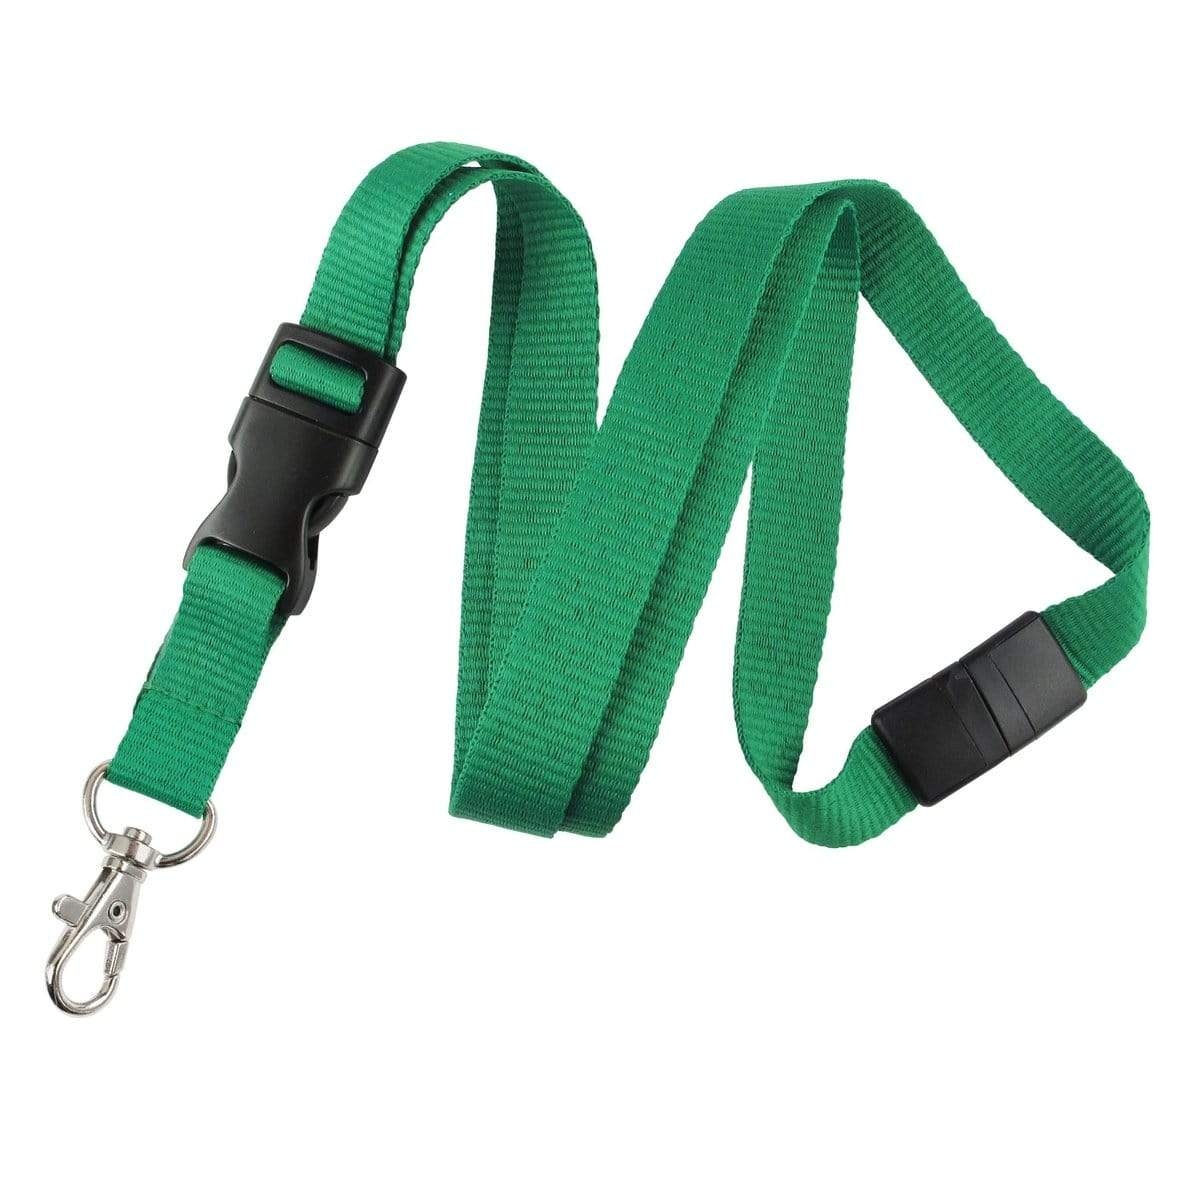 Breakaway Lanyard With Detachable Swivel Lobster Claw 2138-362X